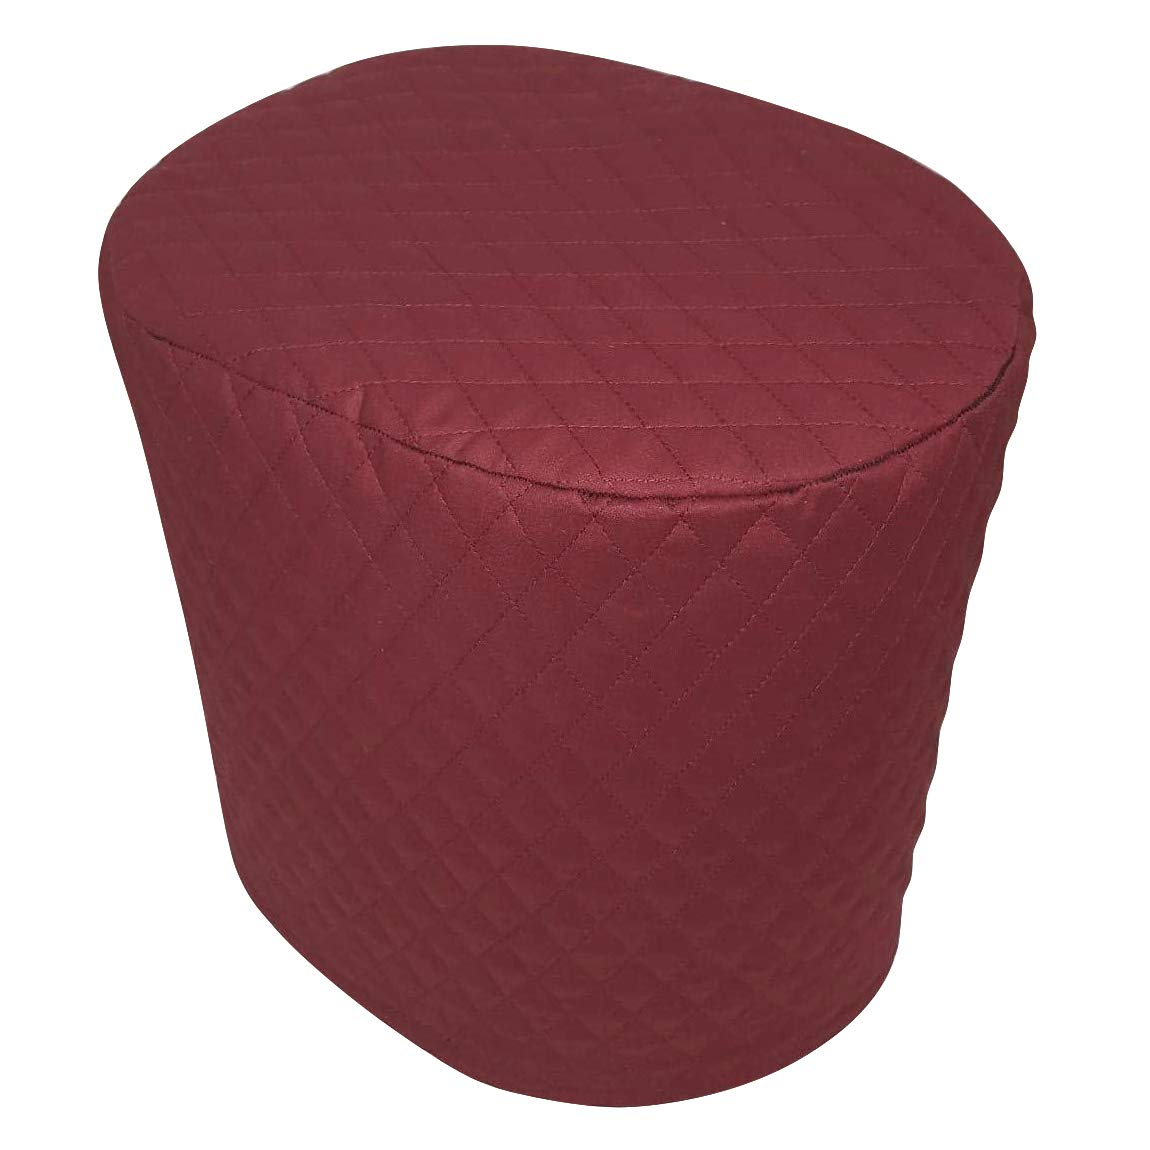 "Coffee Maker Cover, 8""x11""x13"" Quilted 2–ply Cotton Fabric Small Appliance Parts Cover for Kitchen & Dining TFC408 (red)"